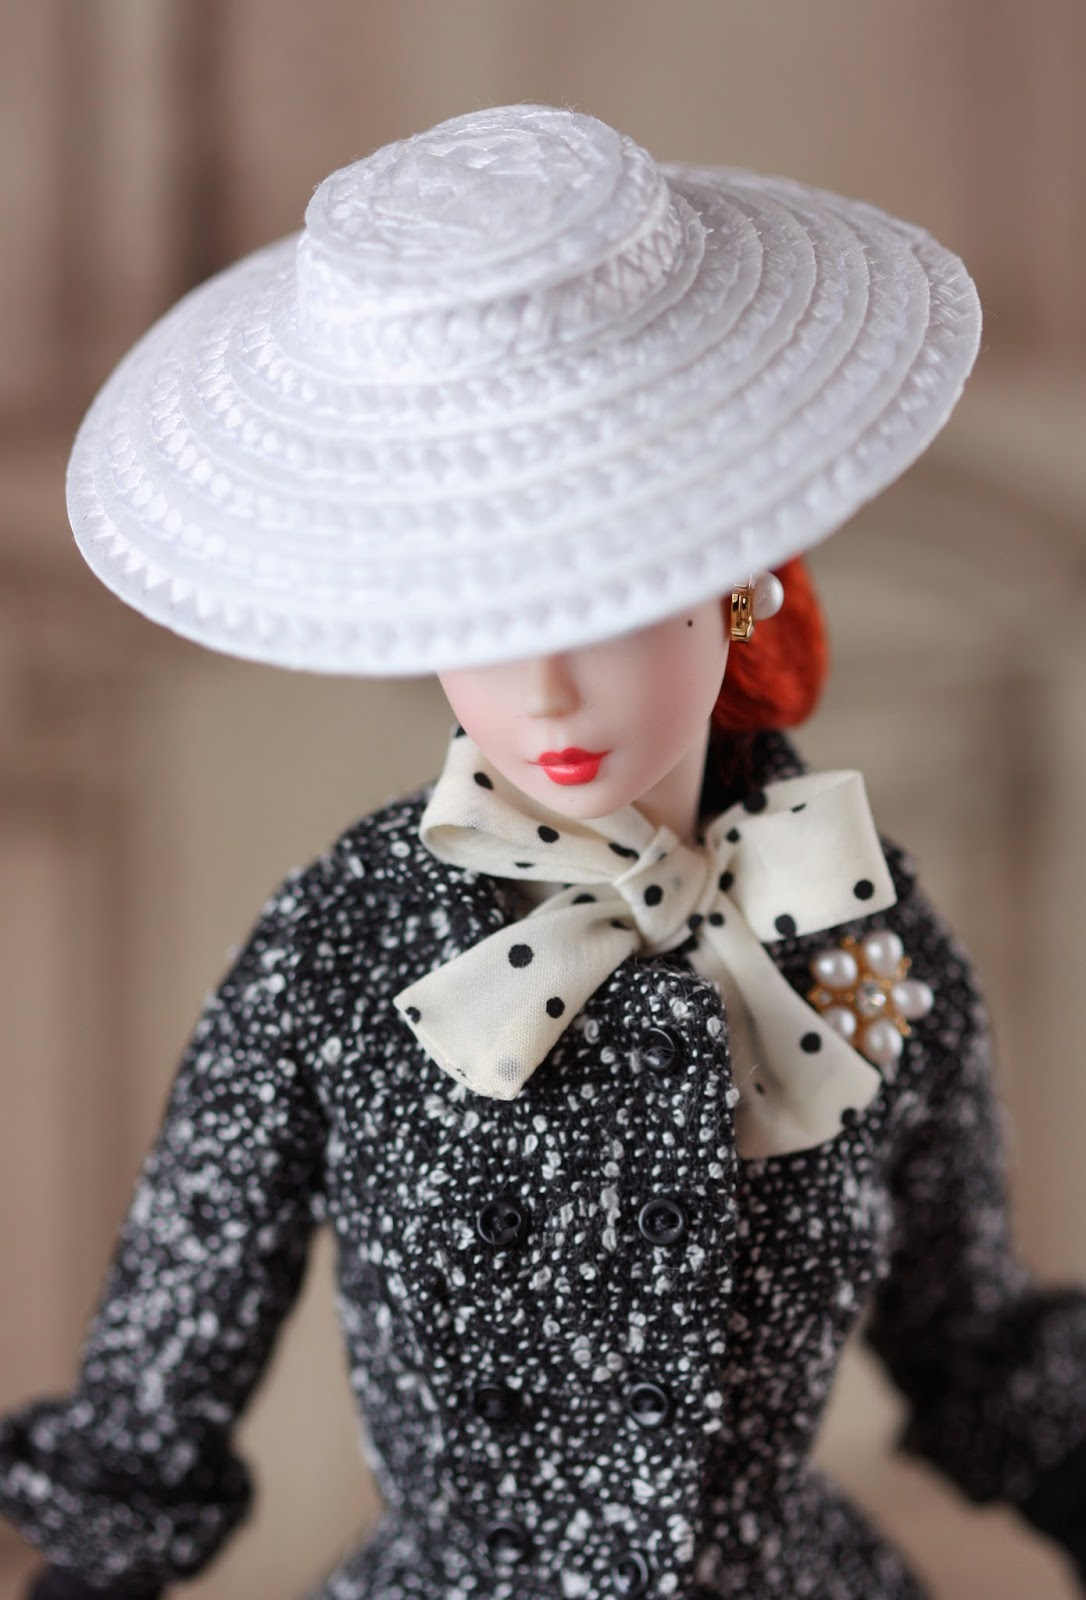 To Dolldom Black And White Tweed Barbie Is A Total Look Doll Not Unlike Its Predecessor Walking Suit But Undoubtedly Dollectors Will Redress